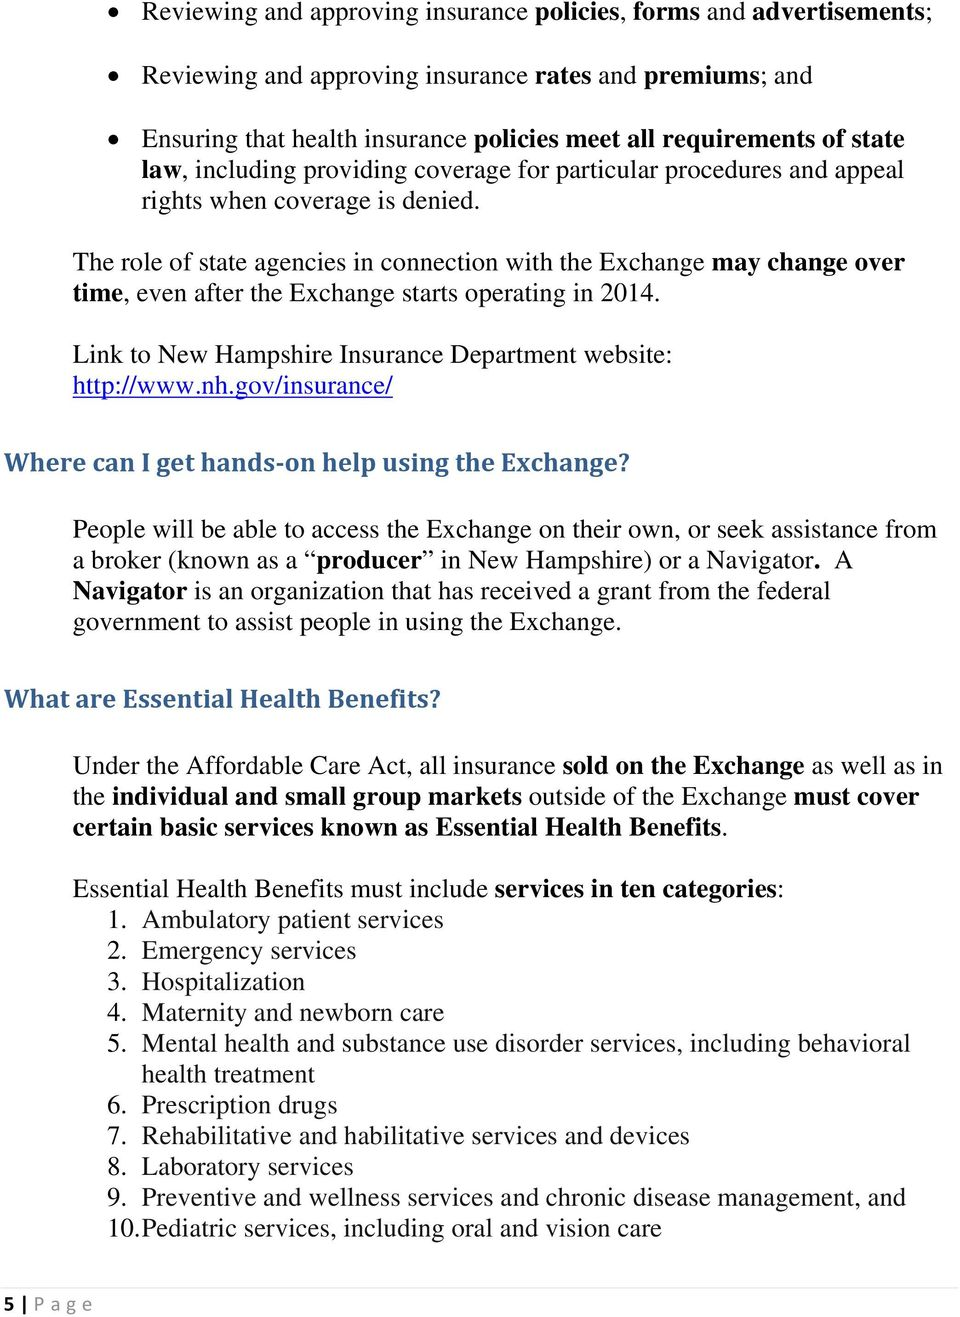 The role of state agencies in connection with the Exchange may change over time, even after the Exchange starts operating in 2014. Link to New Hampshire Insurance Department website: http://www.nh.